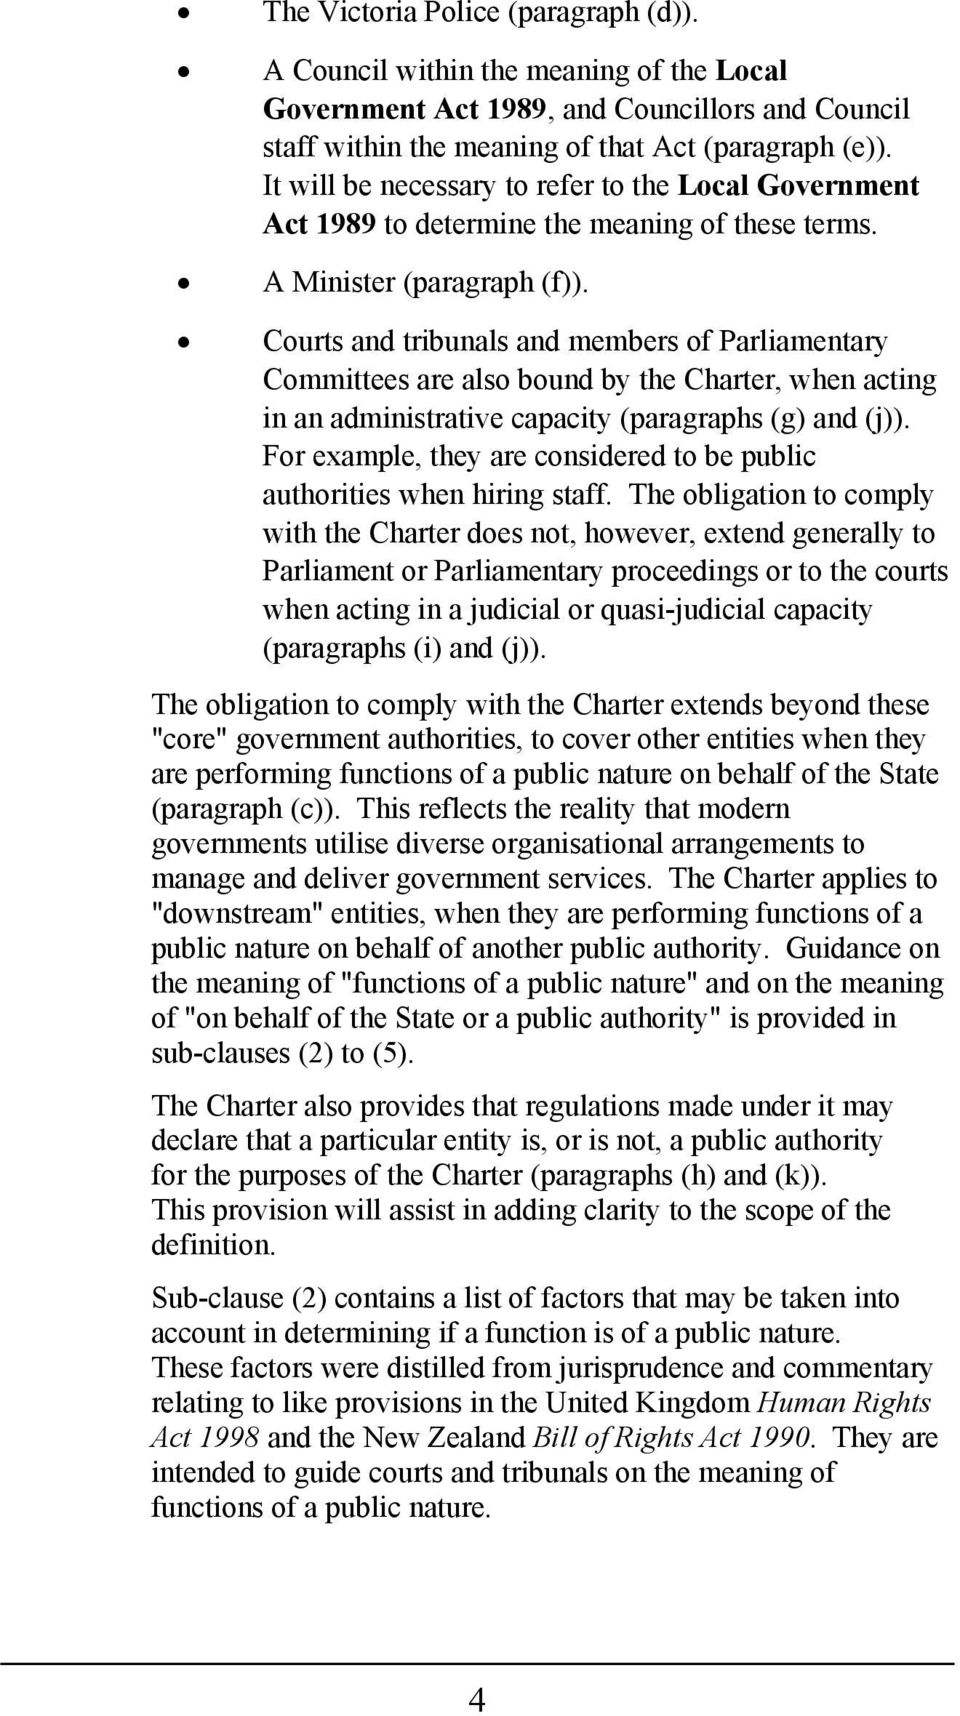 Courts and tribunals and members of Parliamentary Committees are also bound by the Charter, when acting in an administrative capacity (paragraphs (g) and (j)).